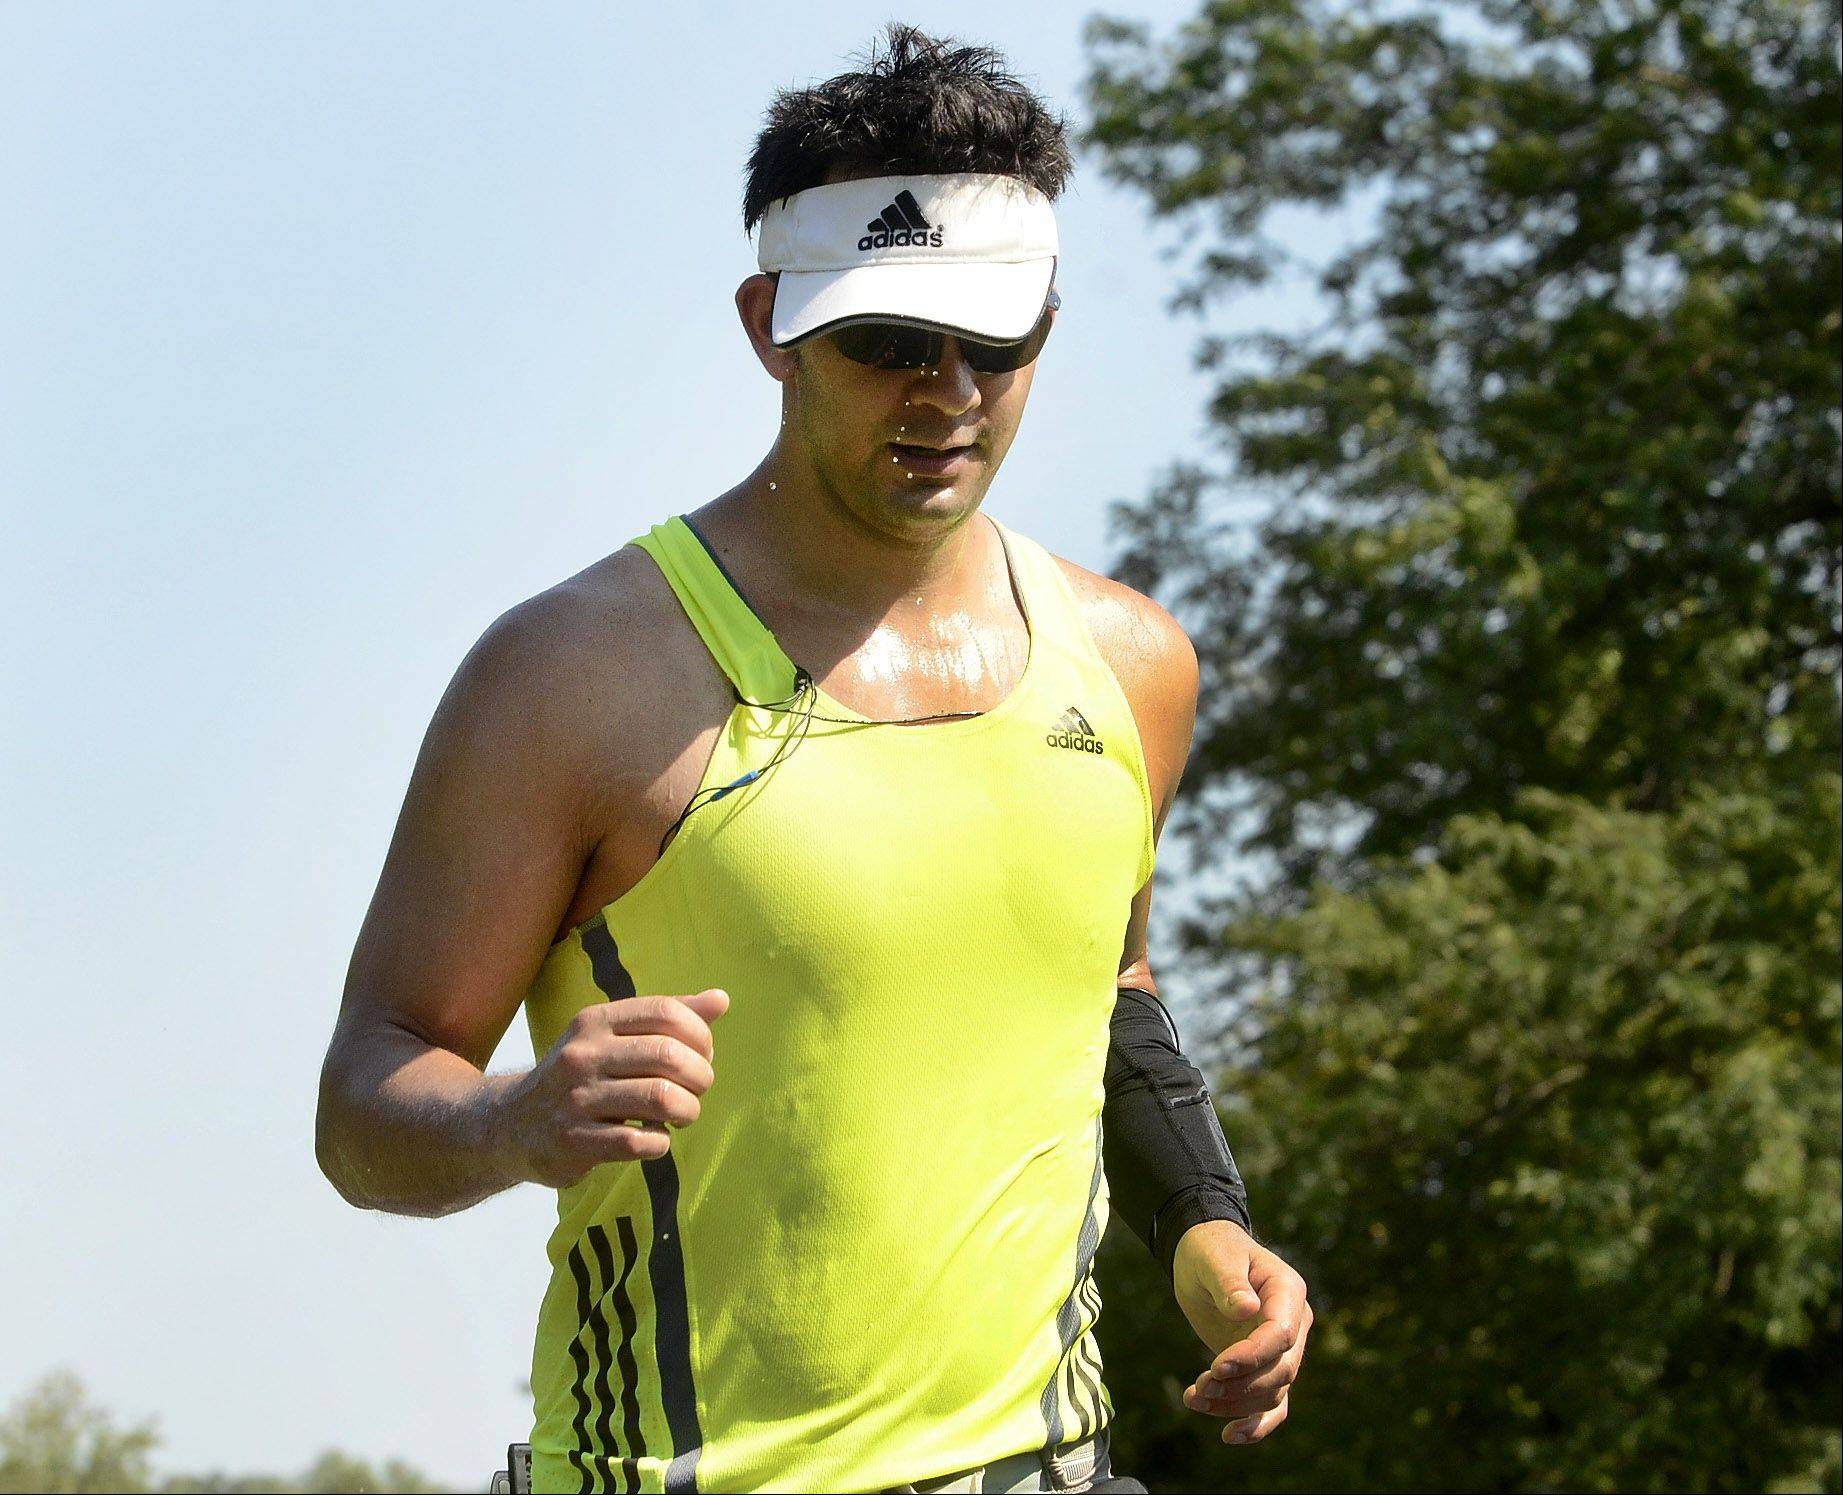 Michael Rosales of Hoffman Estates is training for the Chicago Marathon, and trains regularly along the bike path at Busse West. He runs carrying plenty of water and hydrates constantly in this late summer heat.